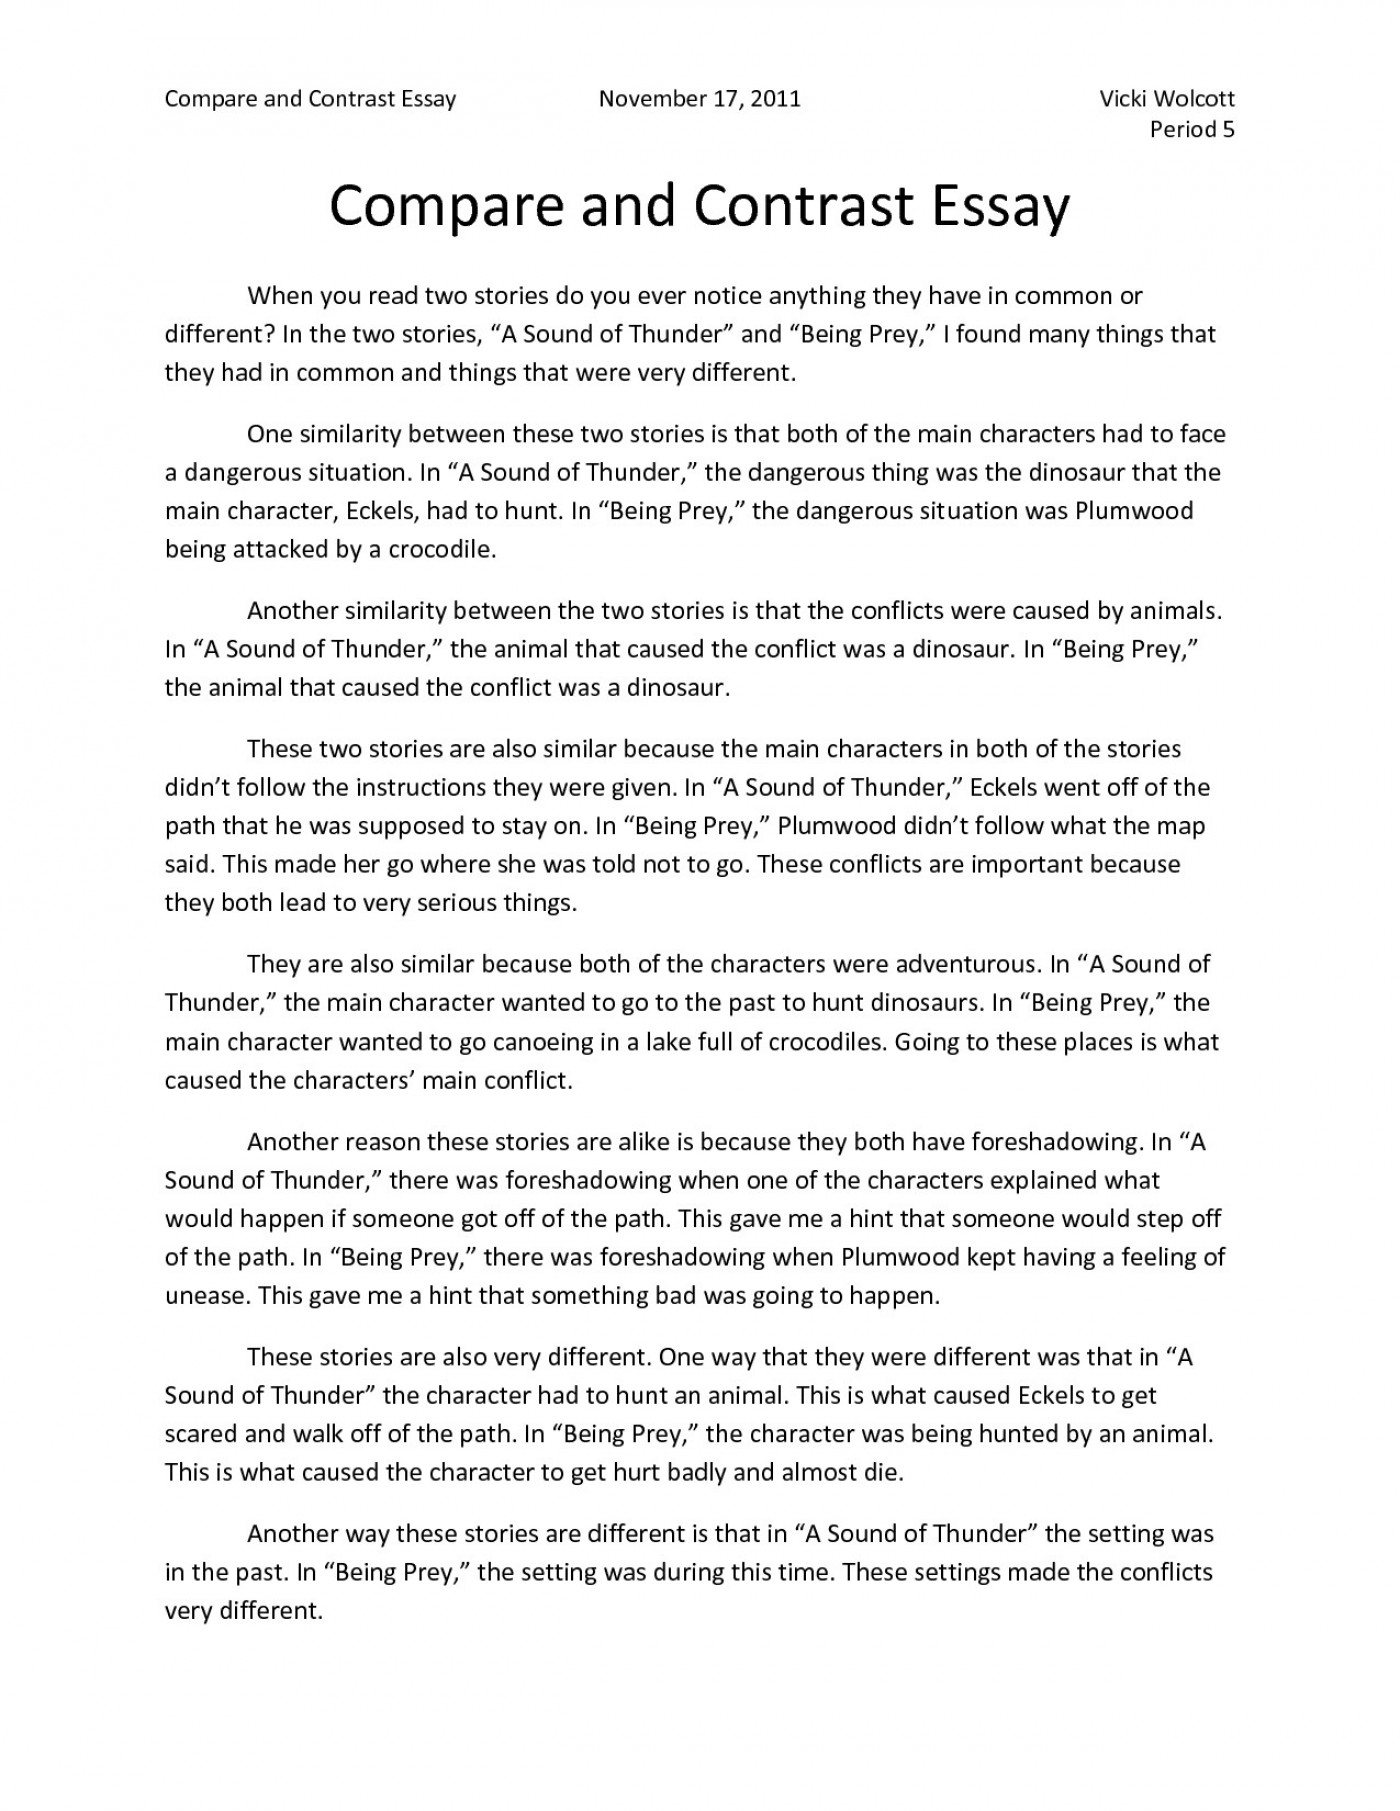 006 Essay Example Compare Contrast An Of And Comparison Ideas Fascinating Topics Graphic Organizer Julius Caesar Answers High School 1400